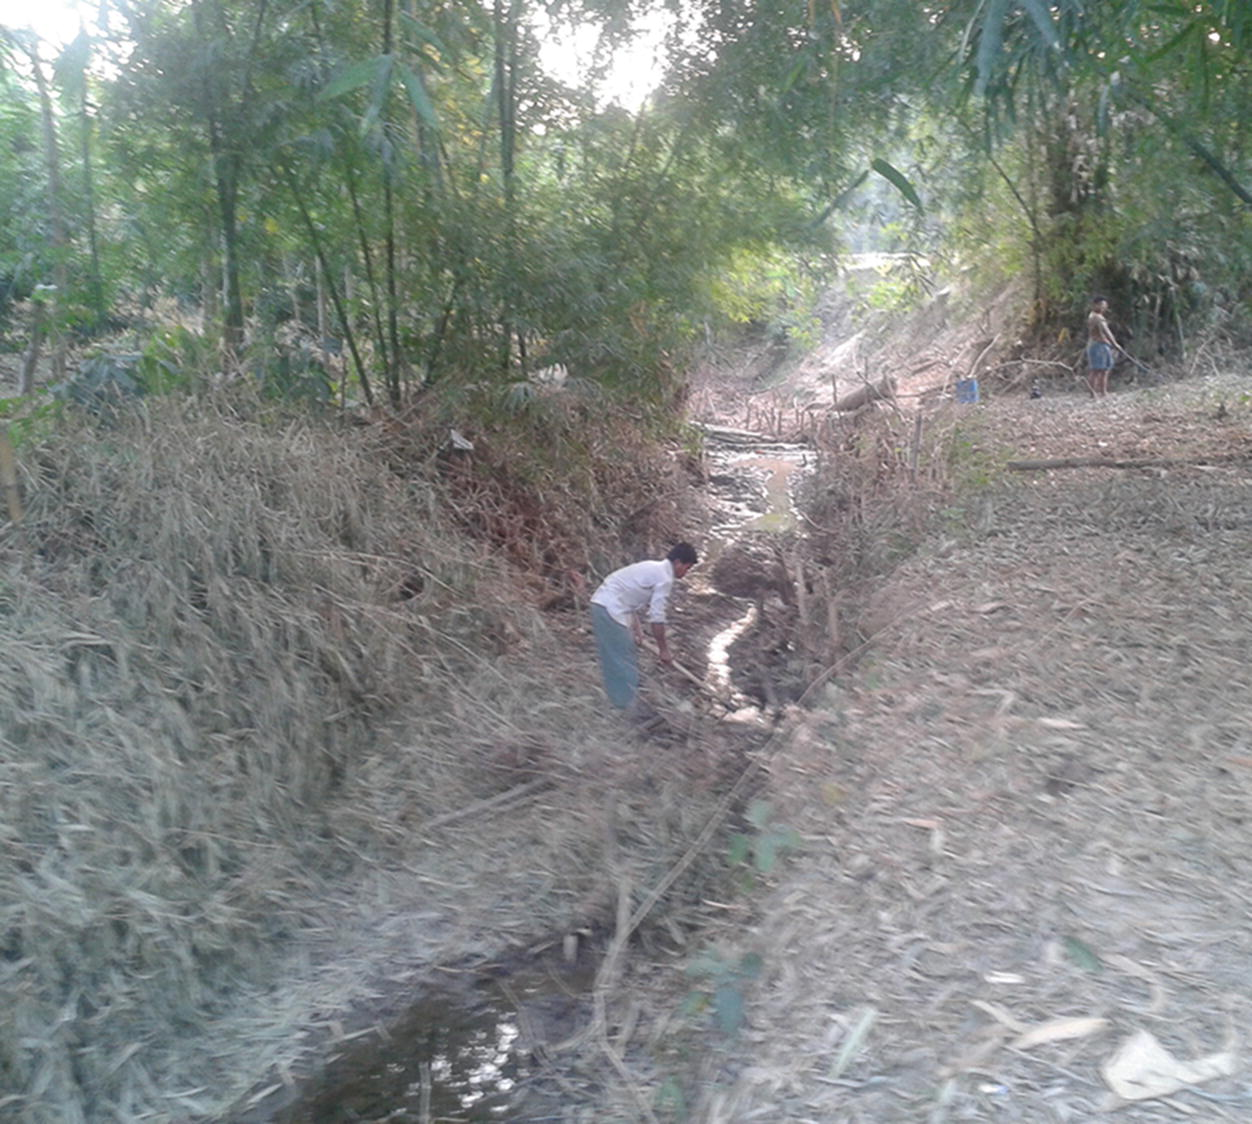 Major Environmental Issues and Problems of South Asia